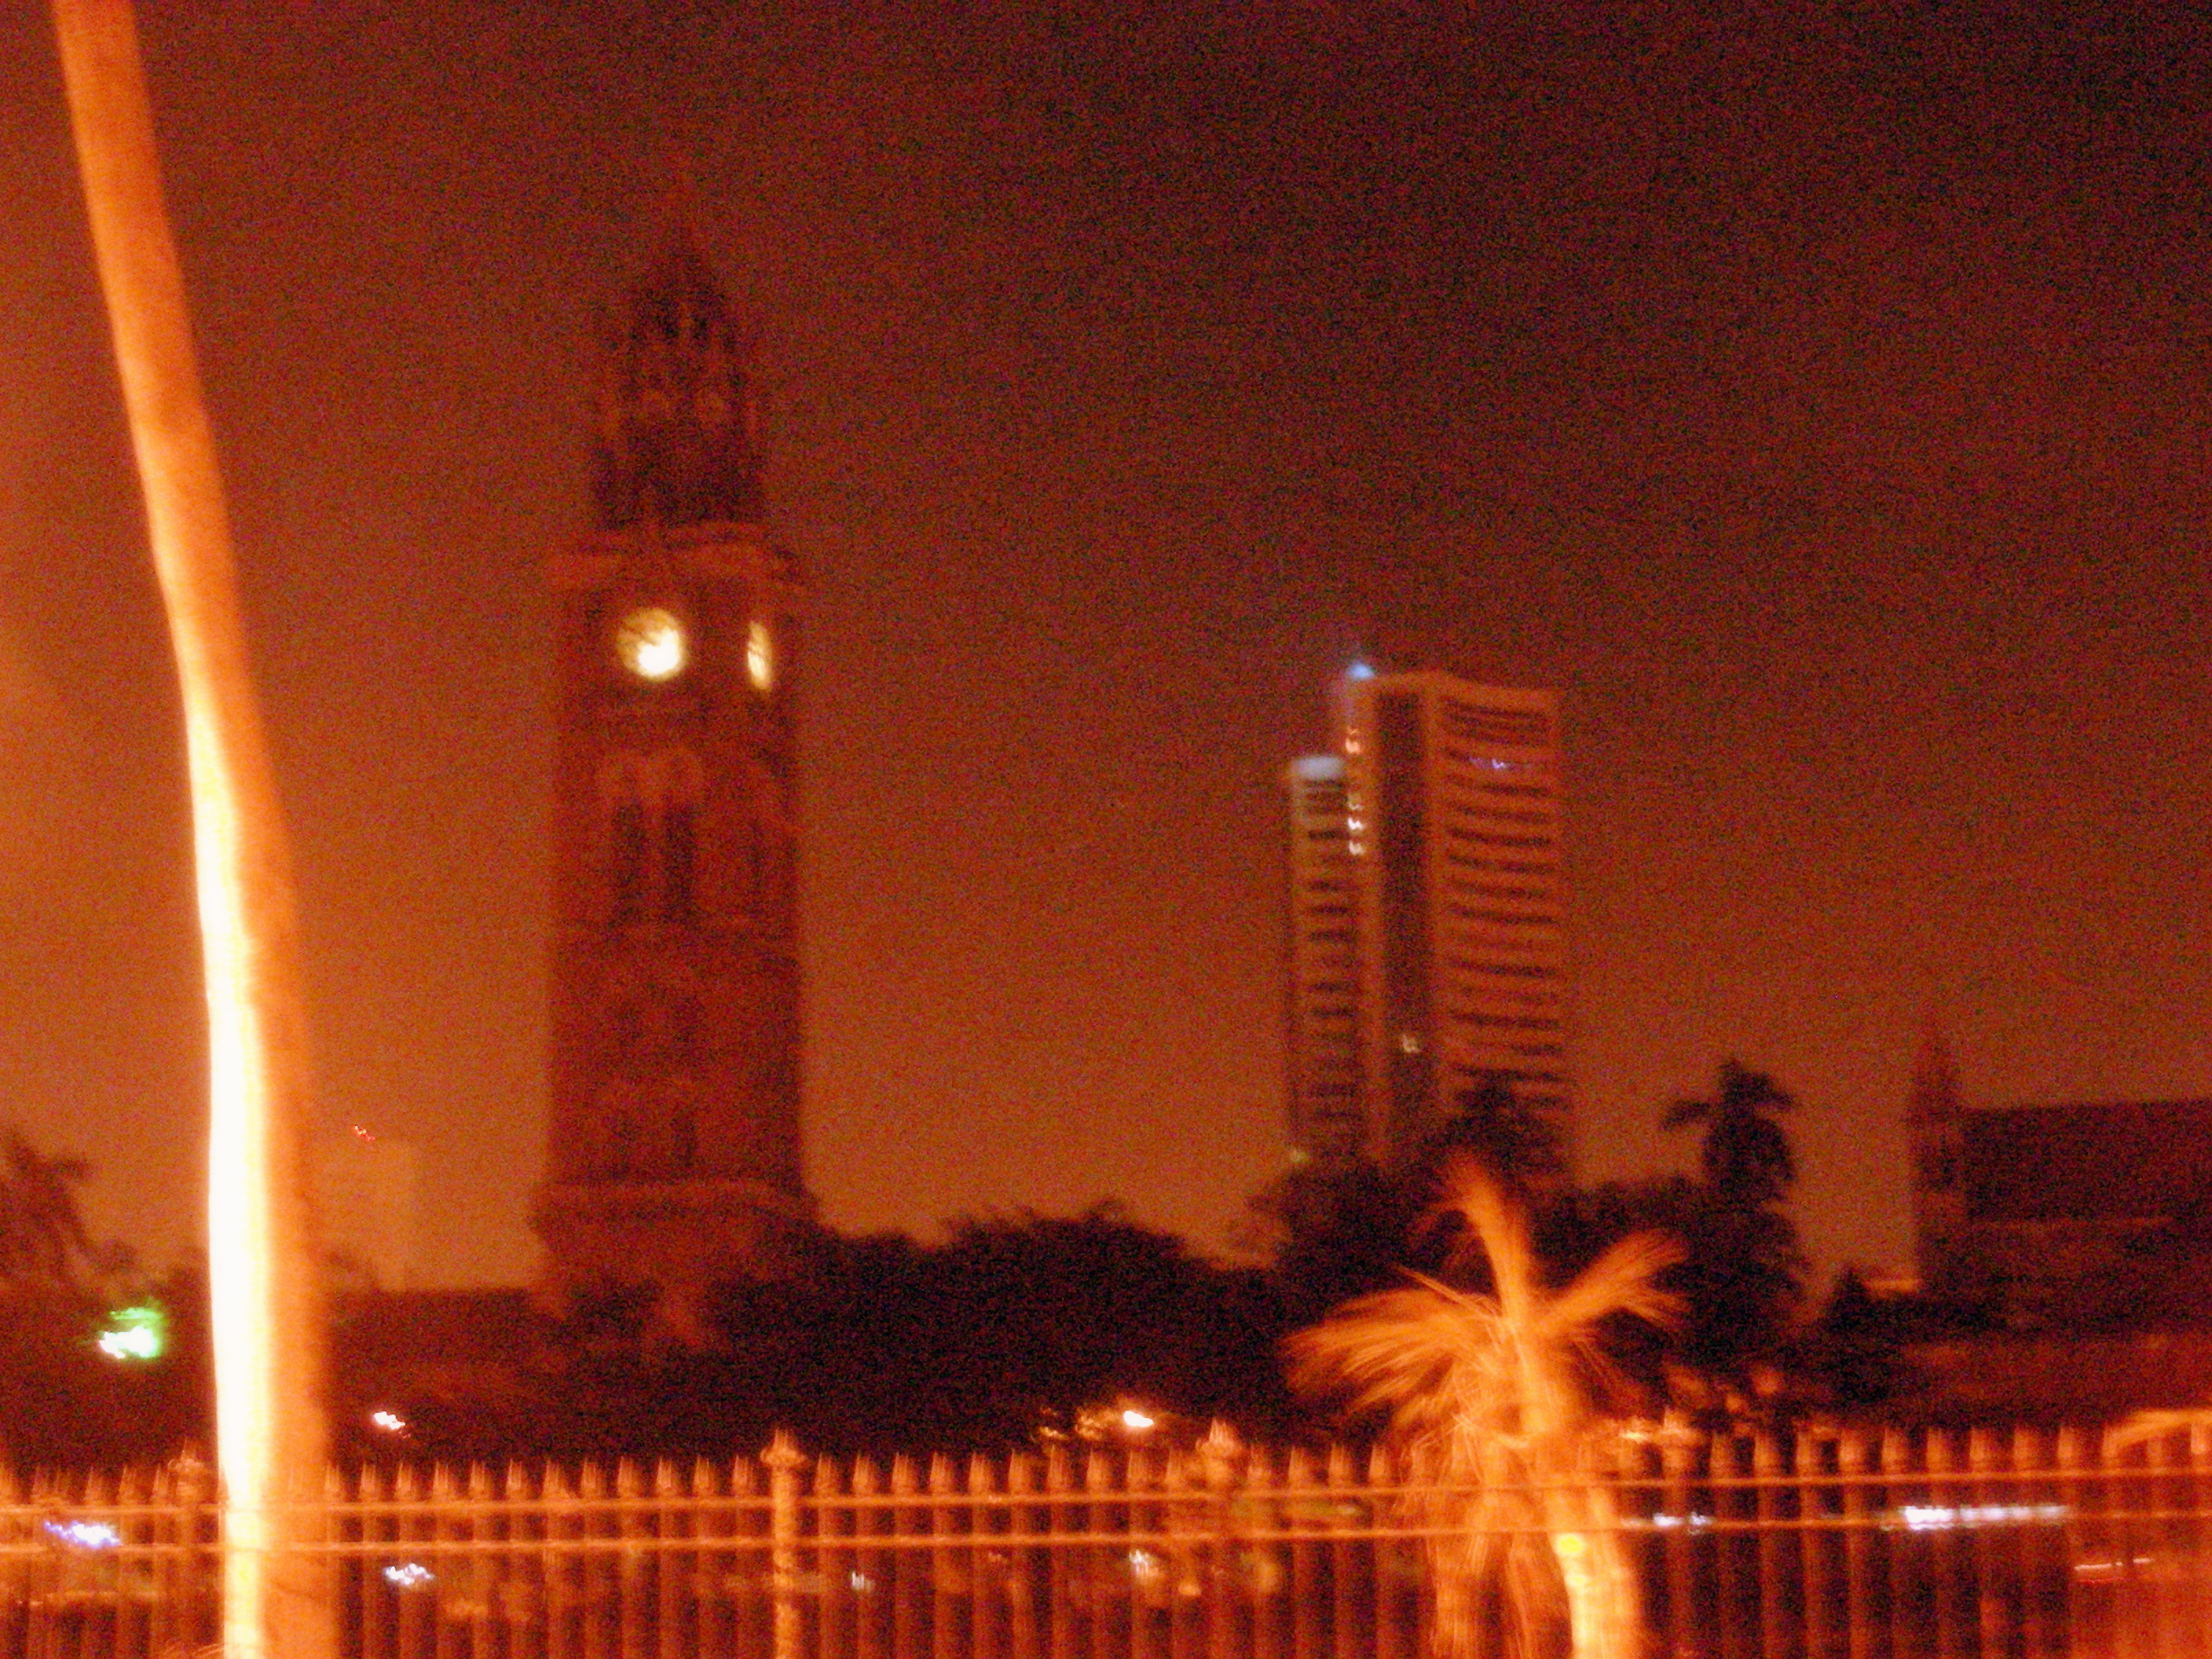 Rajabai Tower and Phiroze Jeejeebhoy towers by night.